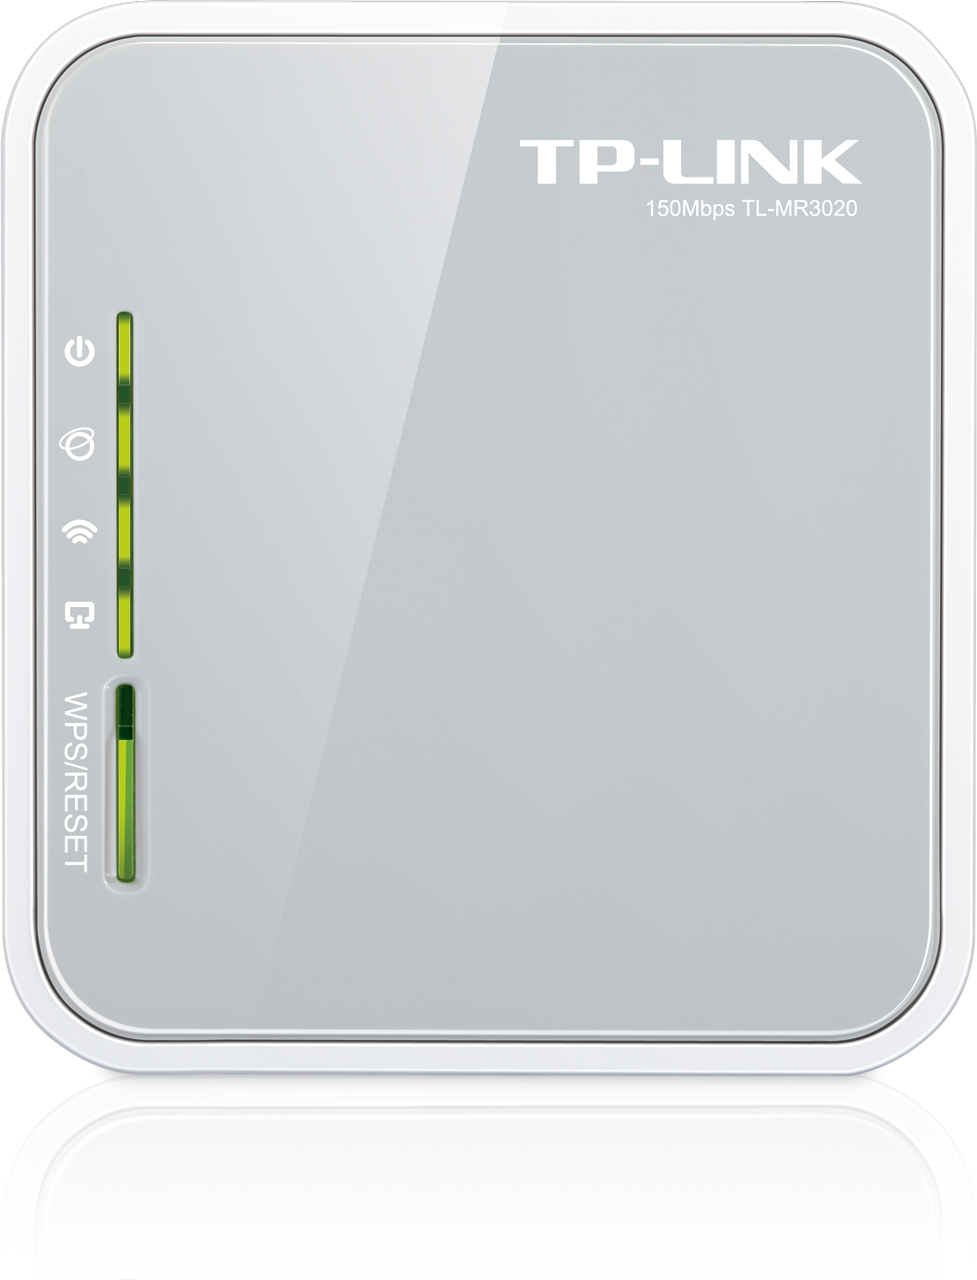 Portable 3G/4G Wireless N Router TL-MR3020 - Welcome to TP-LINK